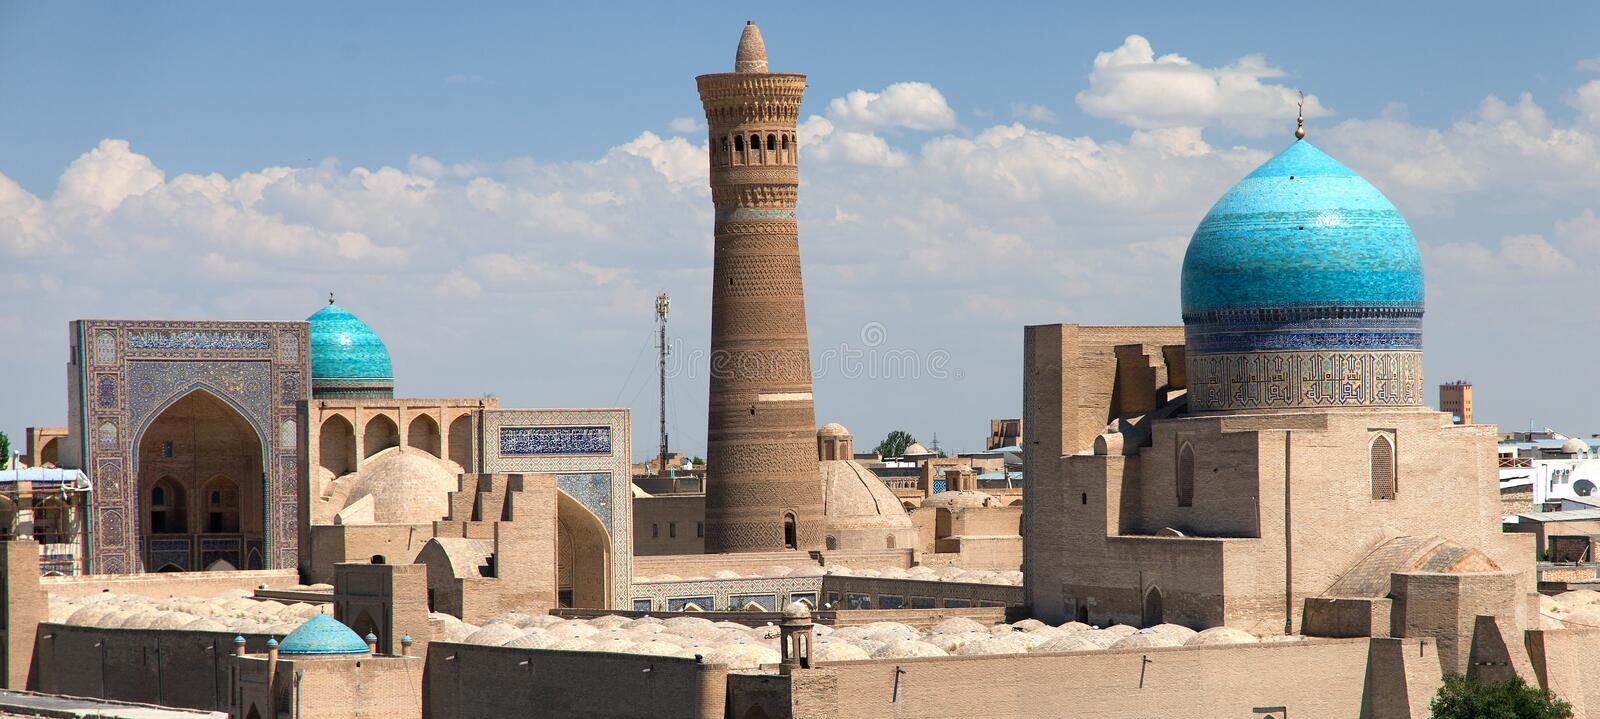 Panoramic view of bukhara from Ark. Uzbekistan stock photo